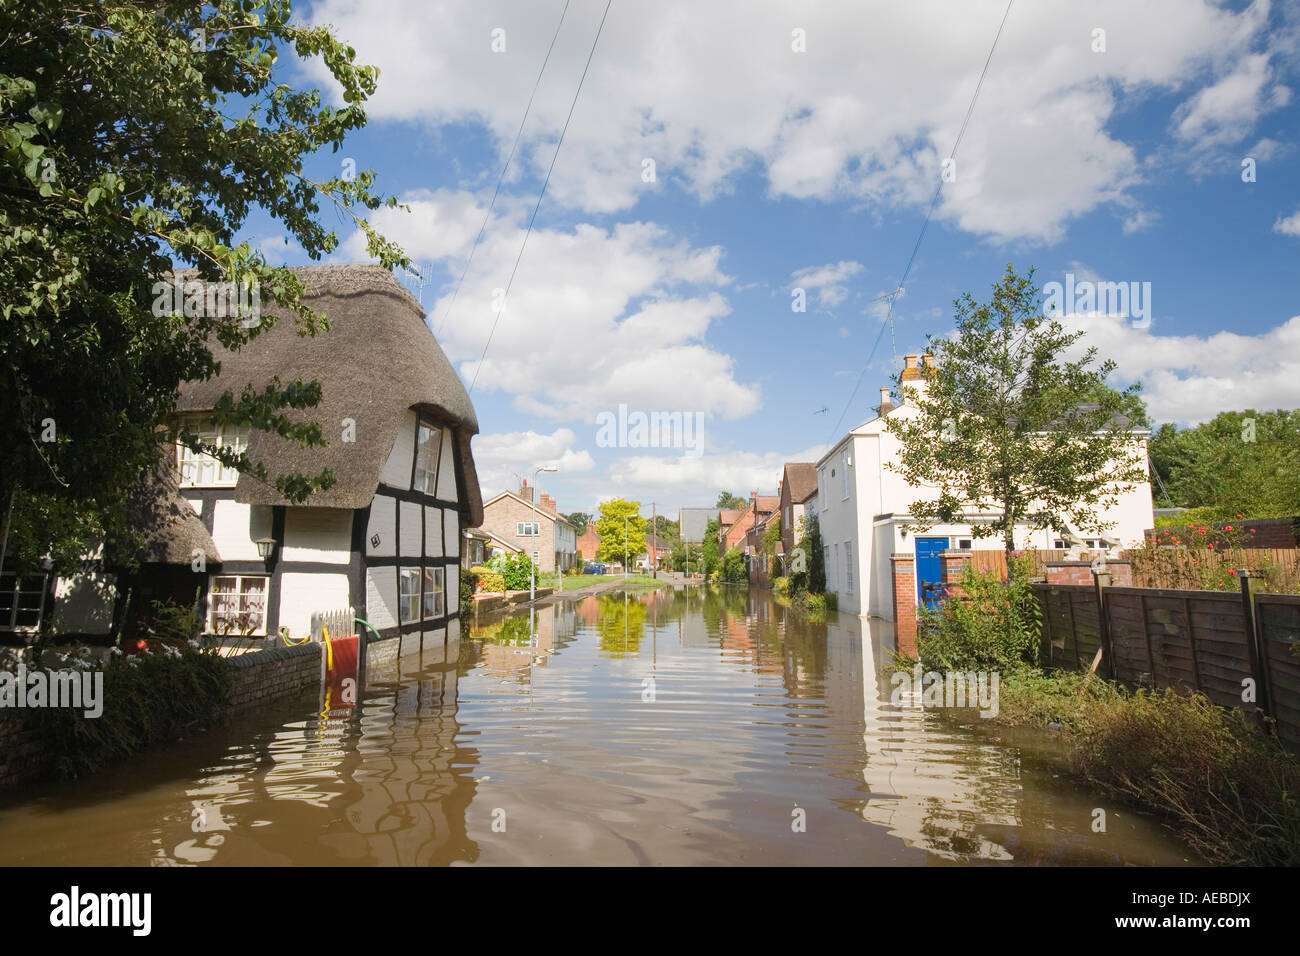 A flooded house in Kempsey near worcester - Stock Image